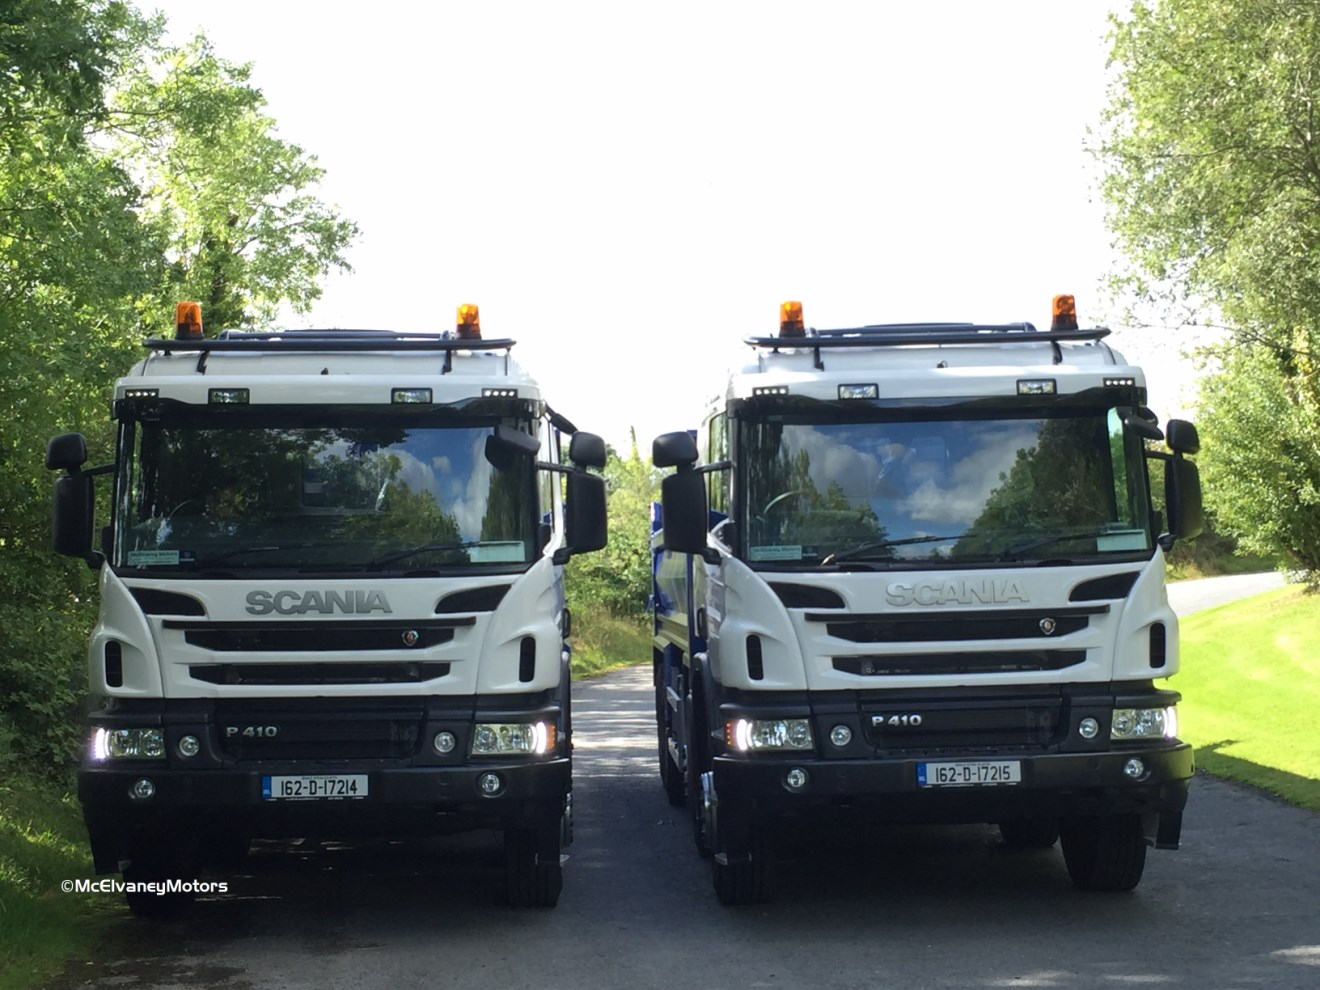 Another two new Scania R410 Tippers for Watson Concrete